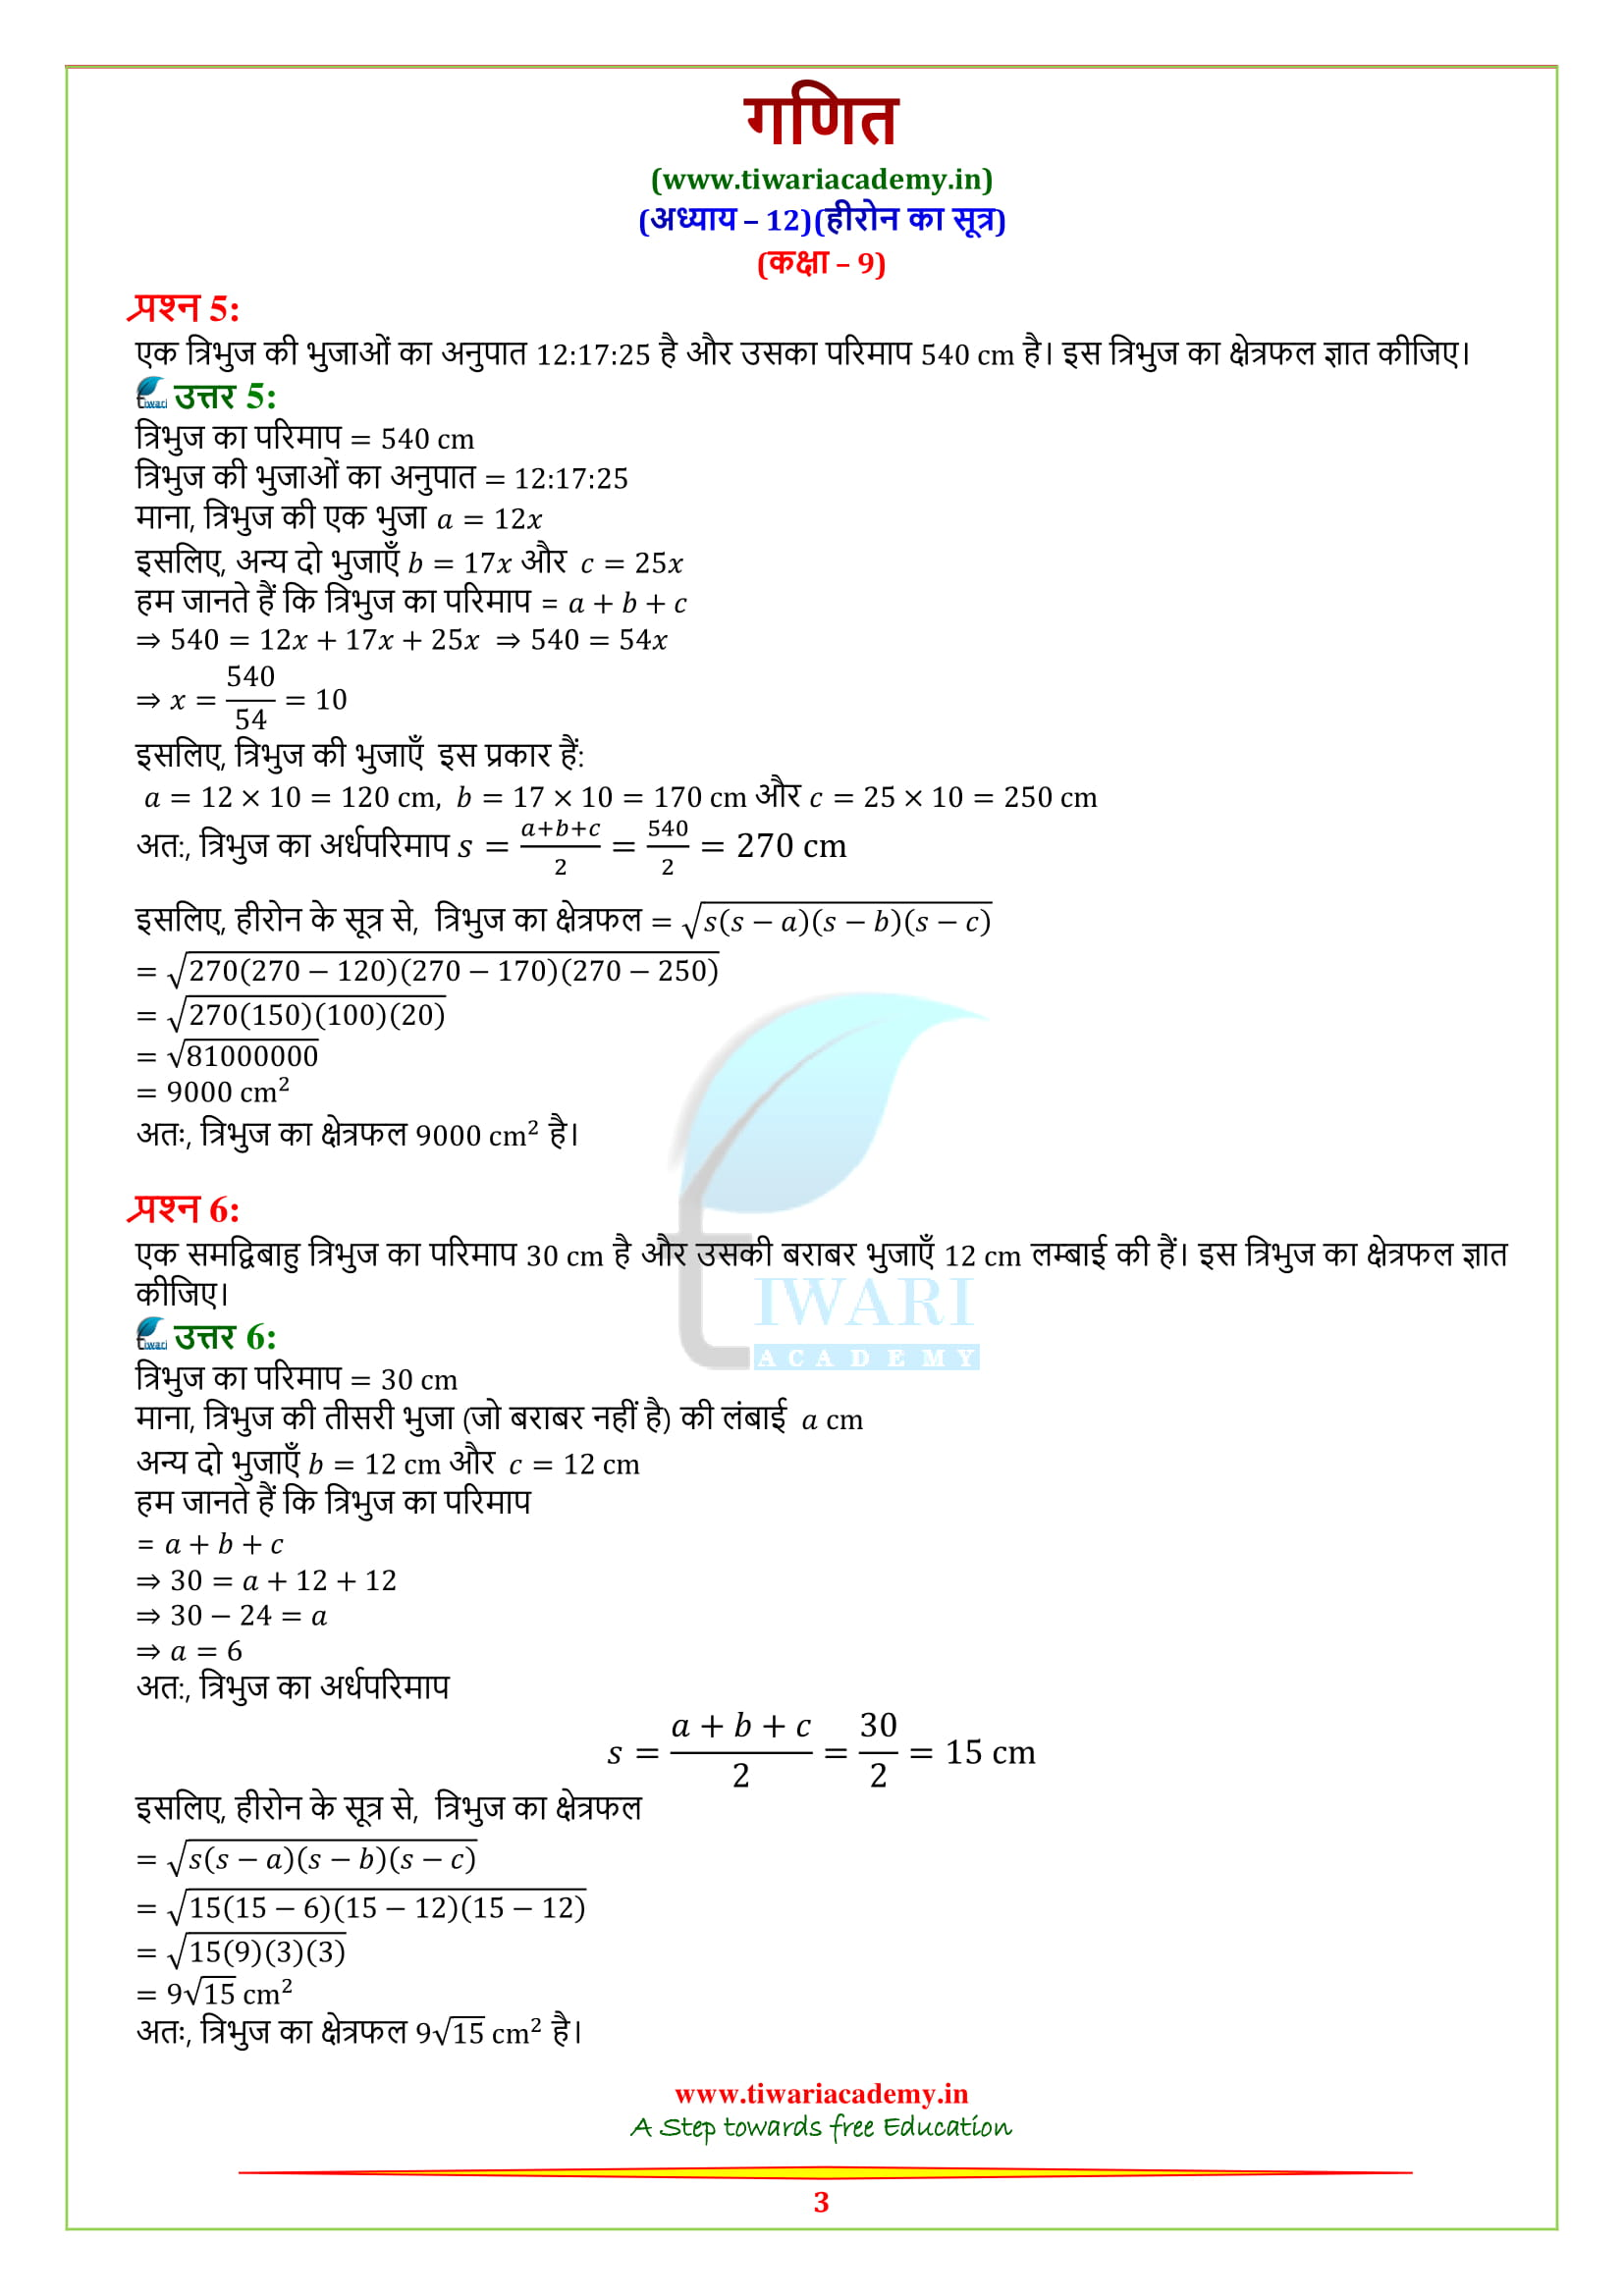 9 Maths Exercise 12.1 solutions free to download guide